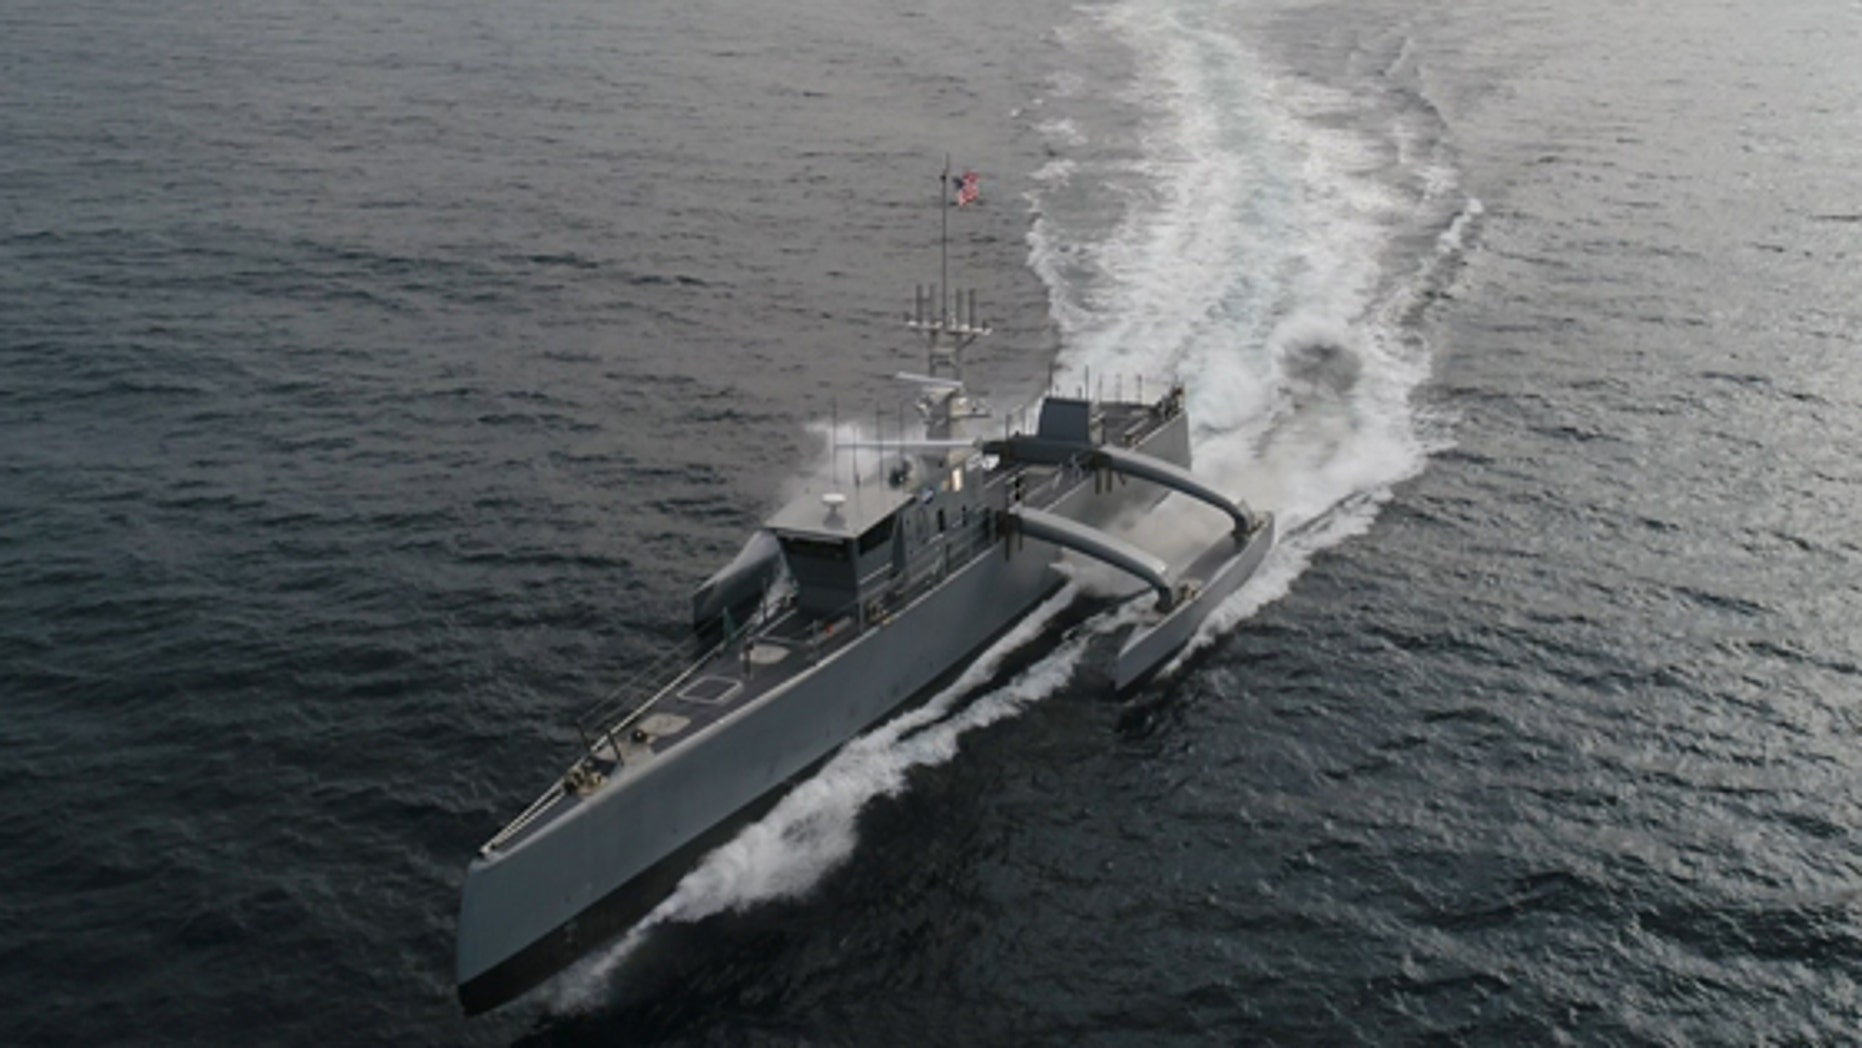 DARPA has successfully completed its Anti-Submarine Warfare (ASW) Continuous Trail Unmanned Vessel (ACTUV) program and has officially transferred the technology demonstration vessel, christened Sea Hunter, to the Office of Naval Research (ONR). (DARPA)